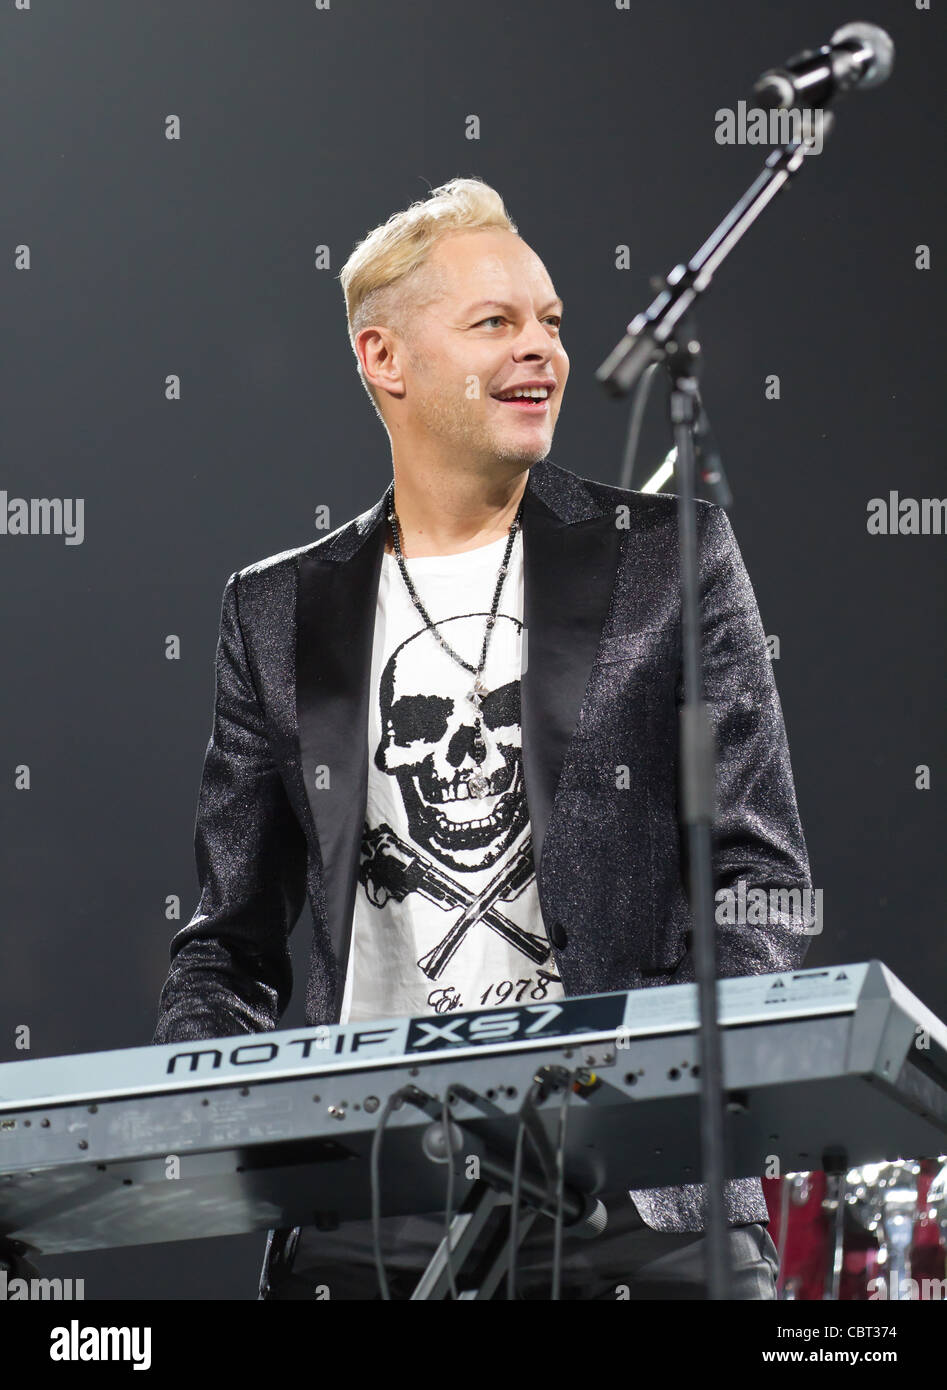 Songwriter and producer Uwe Fahrenkrog-Petersen performs at Sixday-Nights Zuerich 2011 - Stock Image